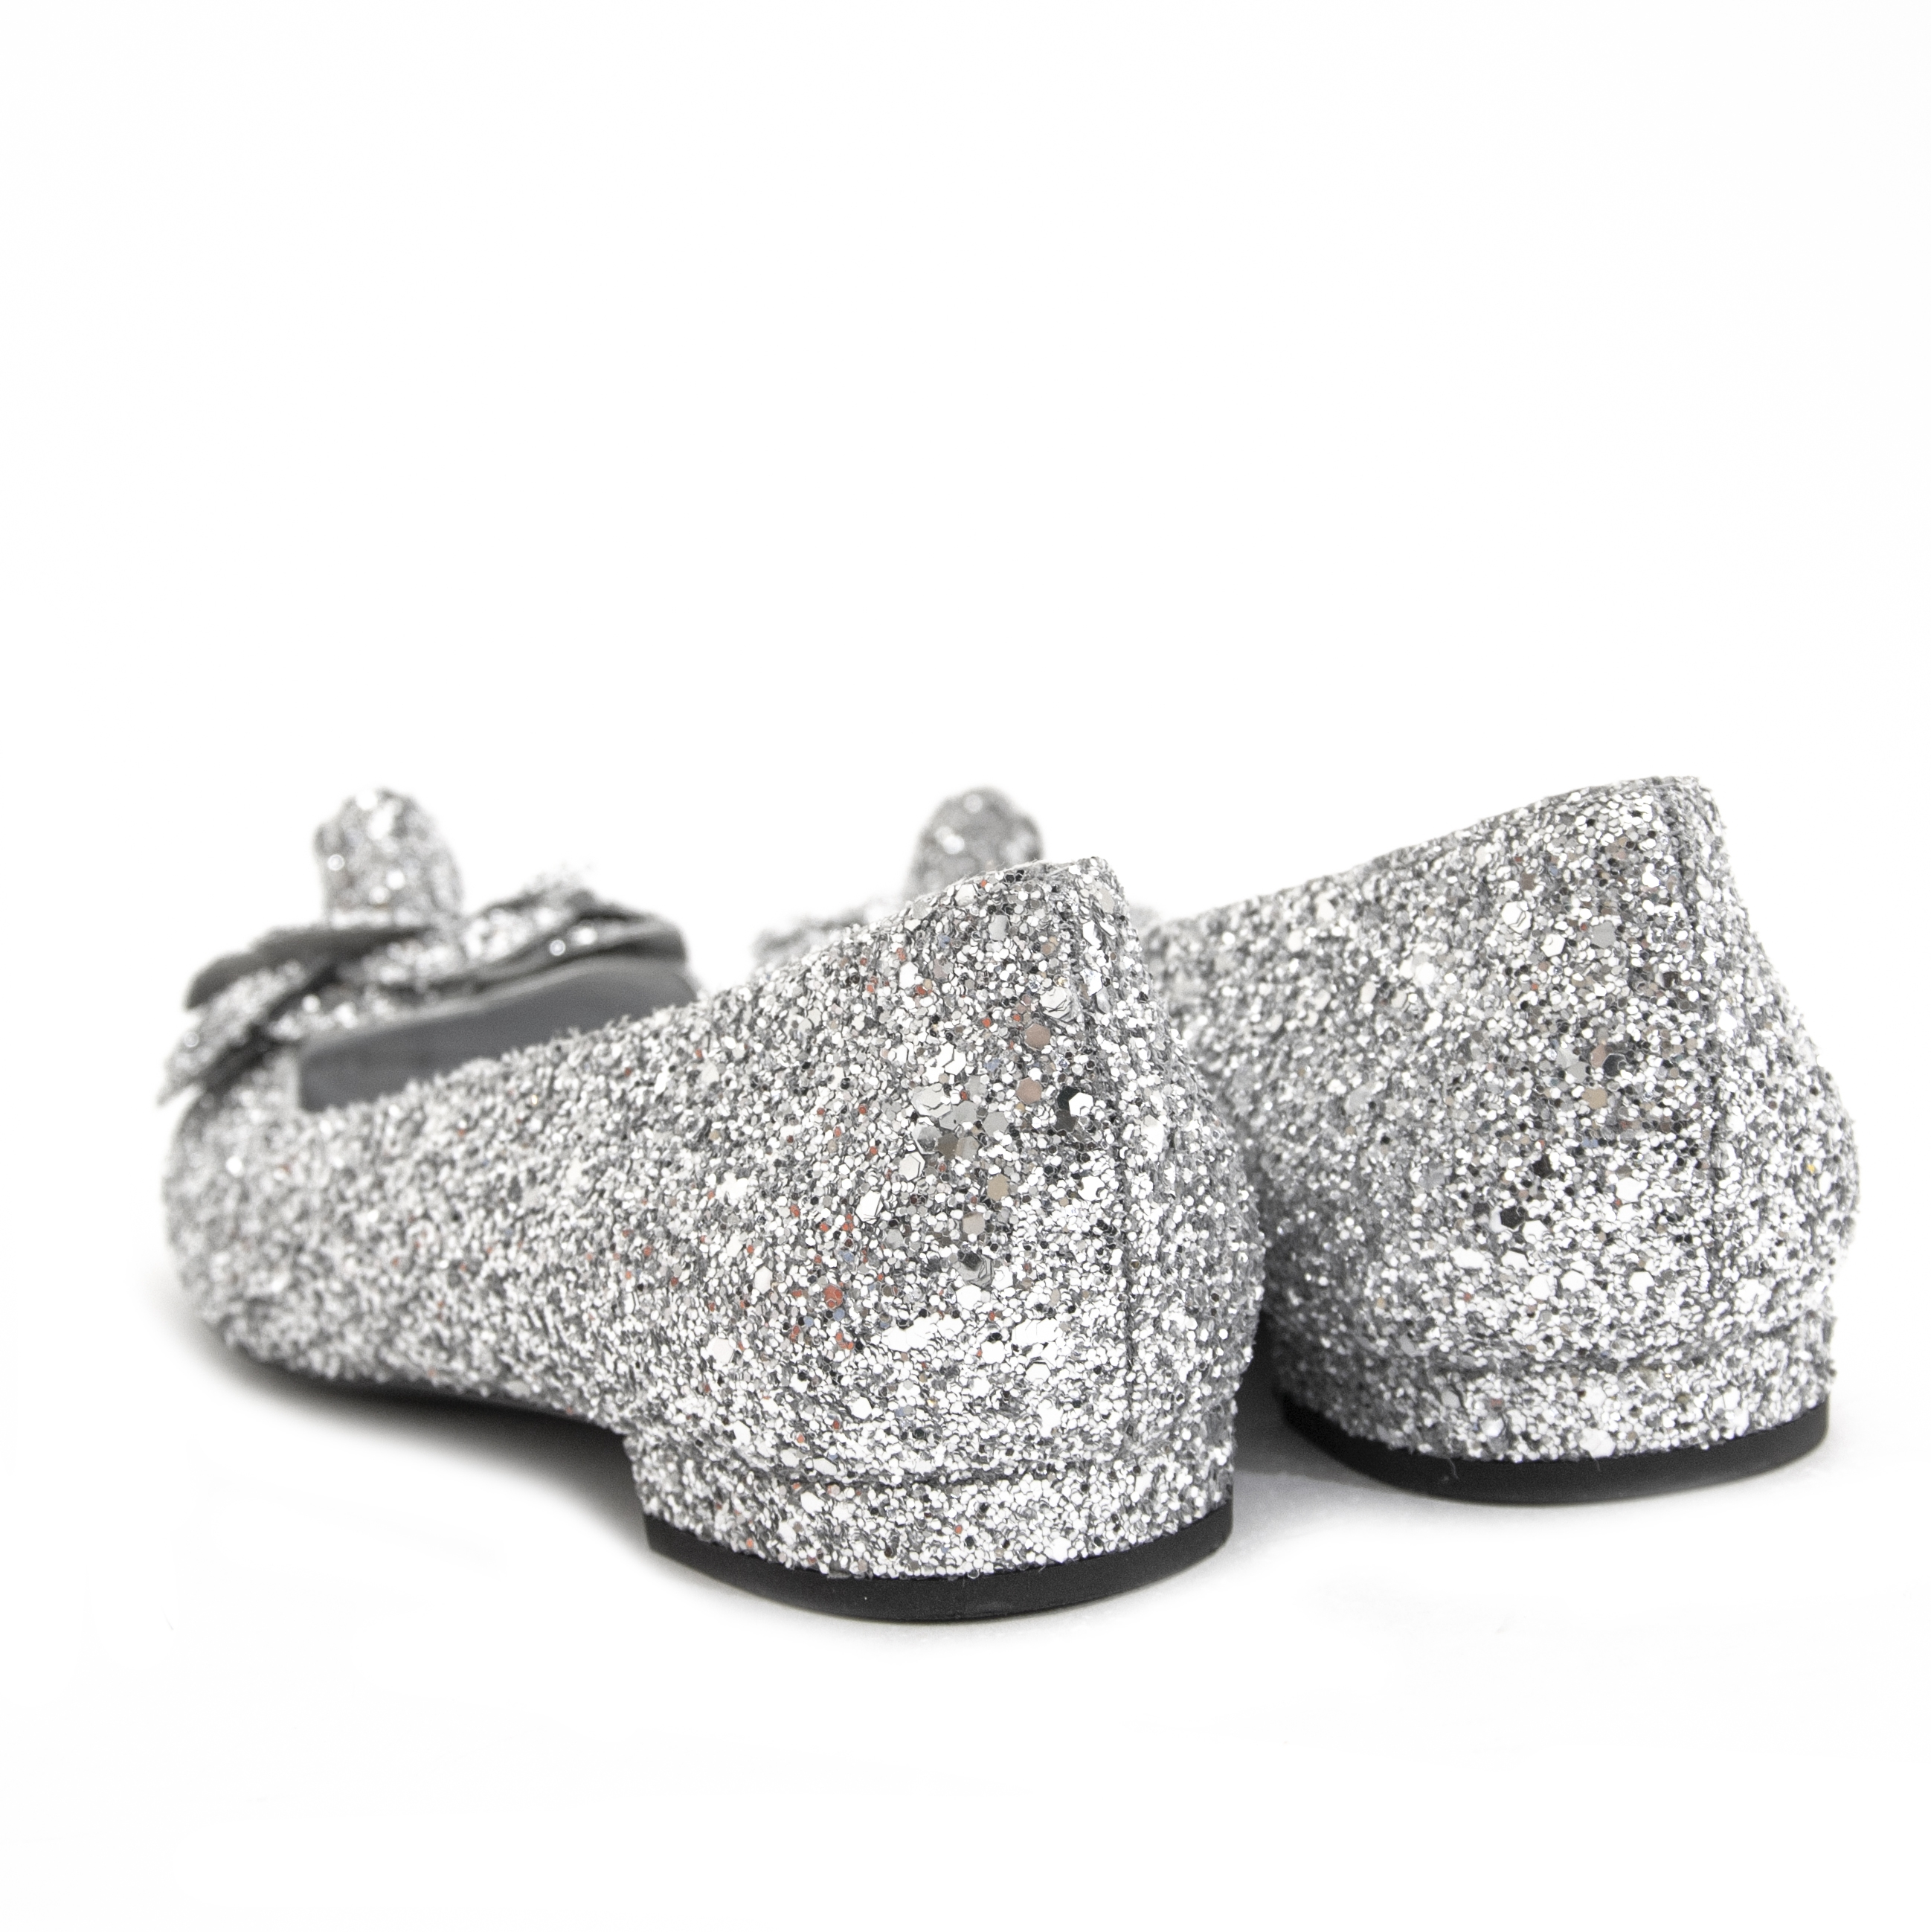 Chanel Silver Glitter Ballerina Flats - size 38 for sale